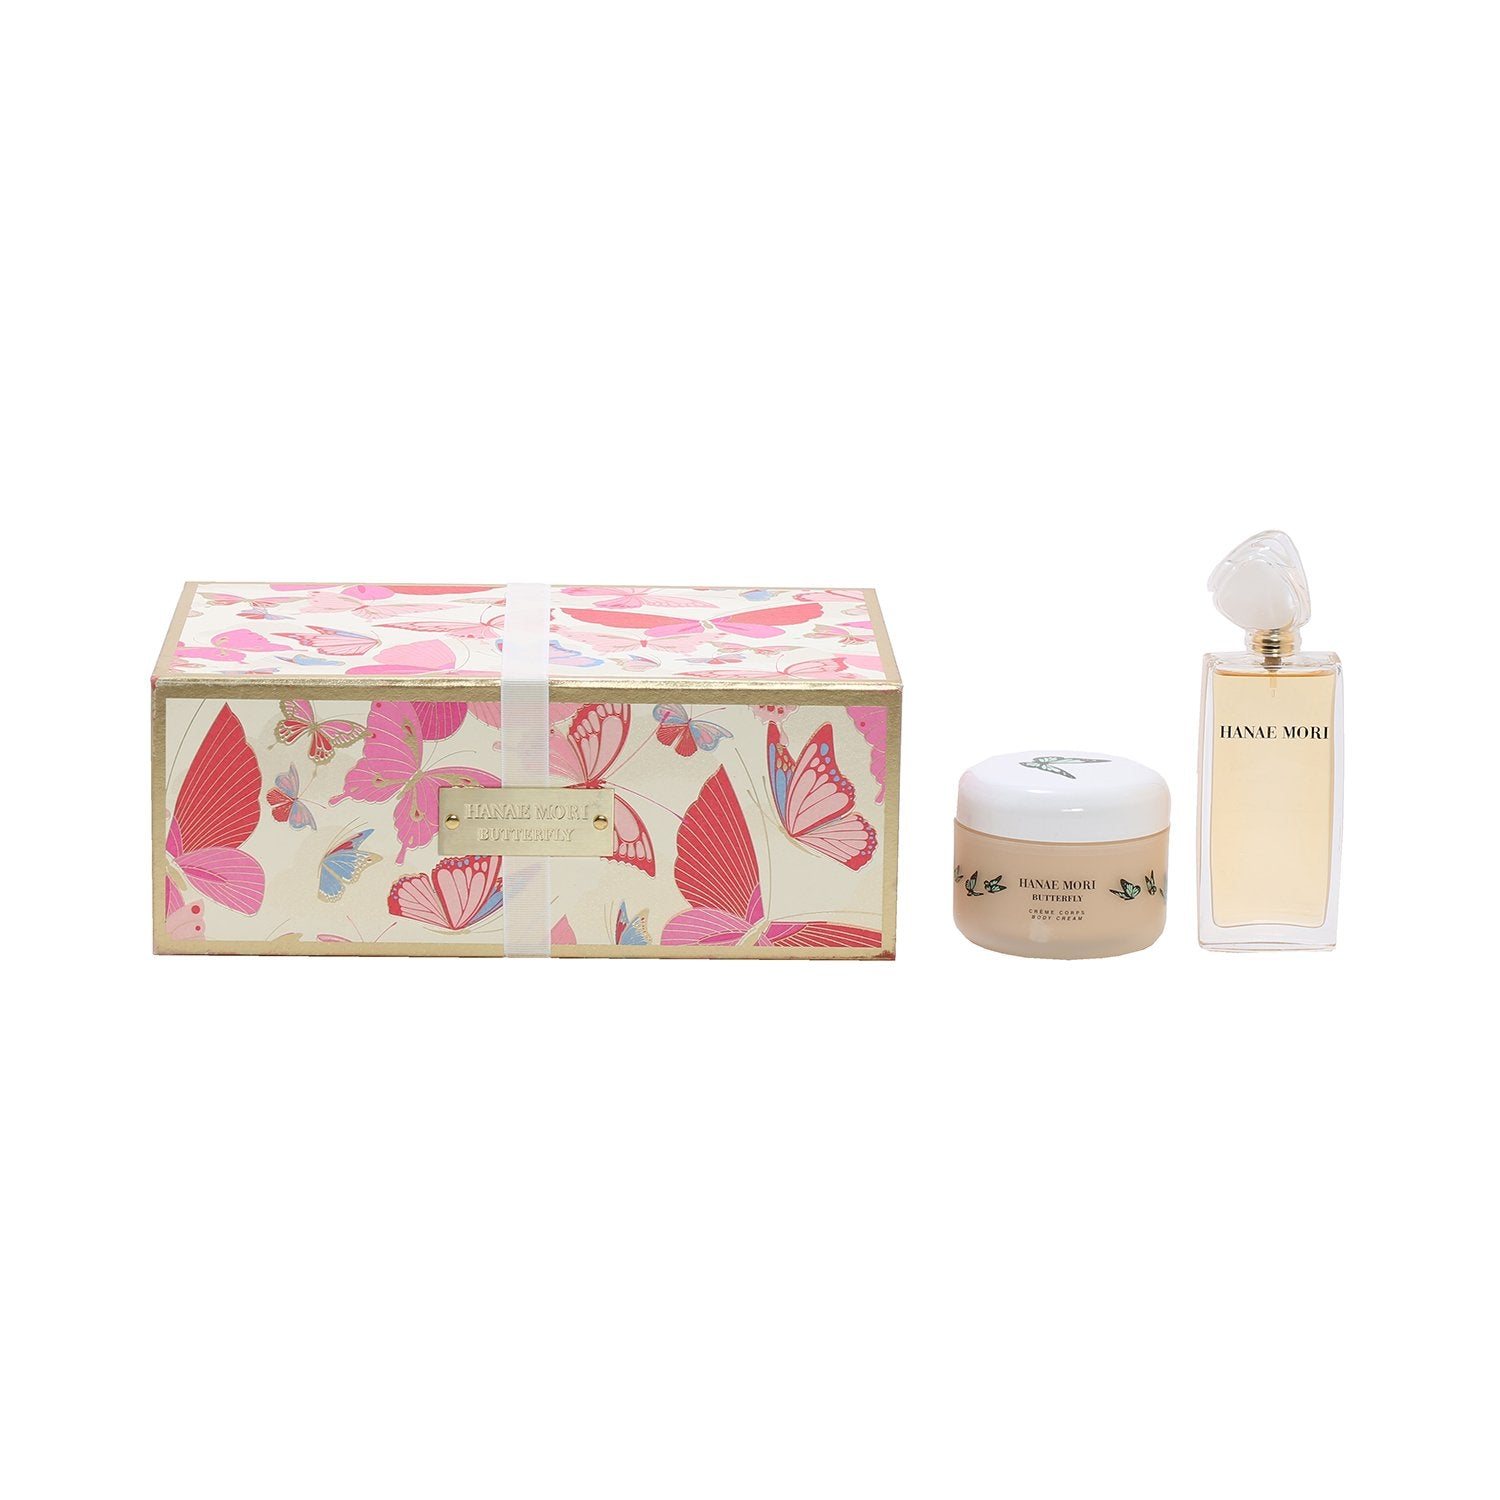 Perfume Sets - HANAE MORI BUTTERFLY FOR WOMEN  - GIFT SET